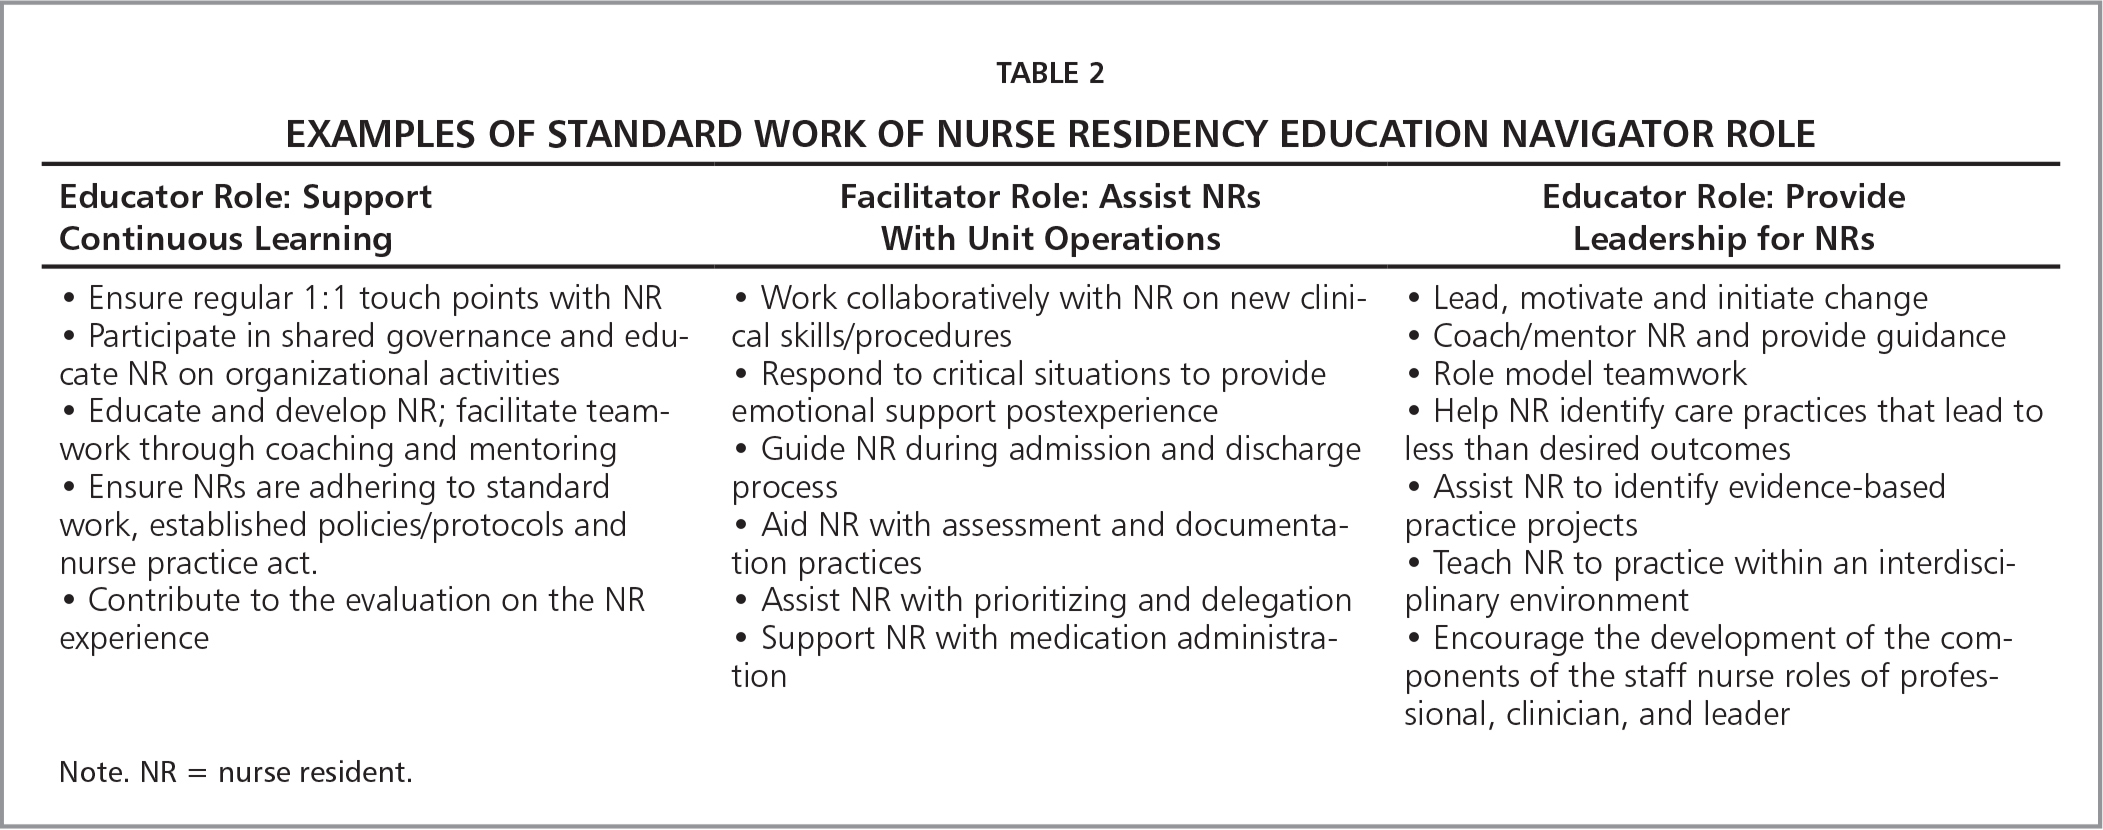 Examples of Standard Work of Nurse Residency Education Navigator Role